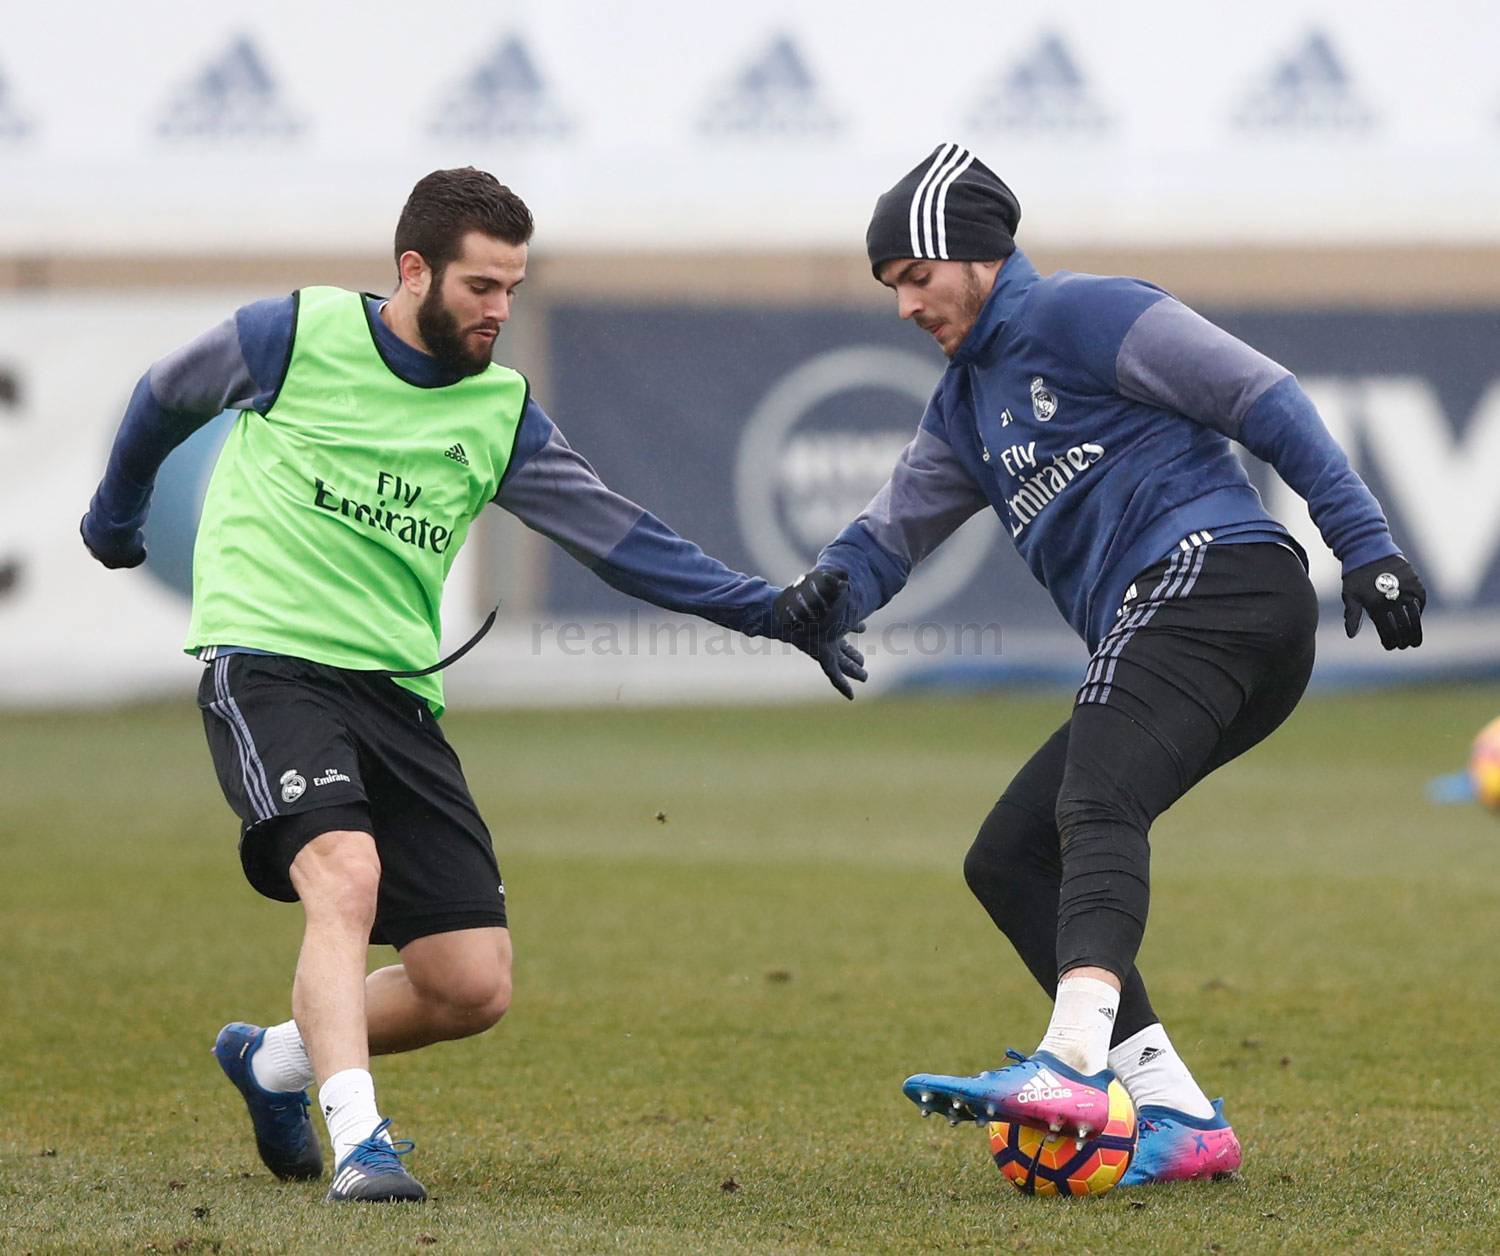 Real Madrid - Entrenamiento del Real Madrid - 02-02-2017